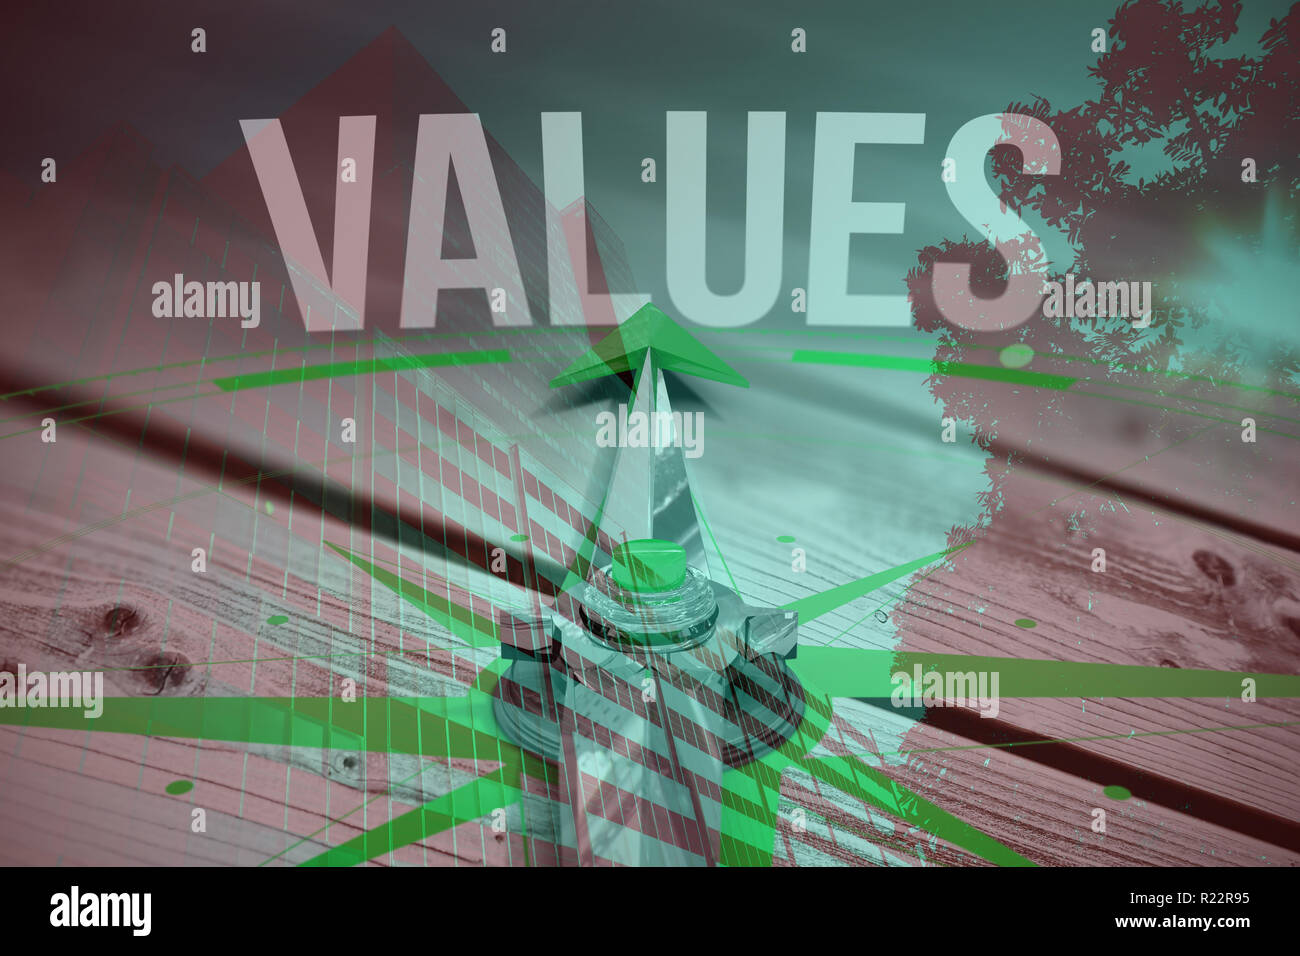 Composite image of values against digitally generated grey wooden planks - Stock Image